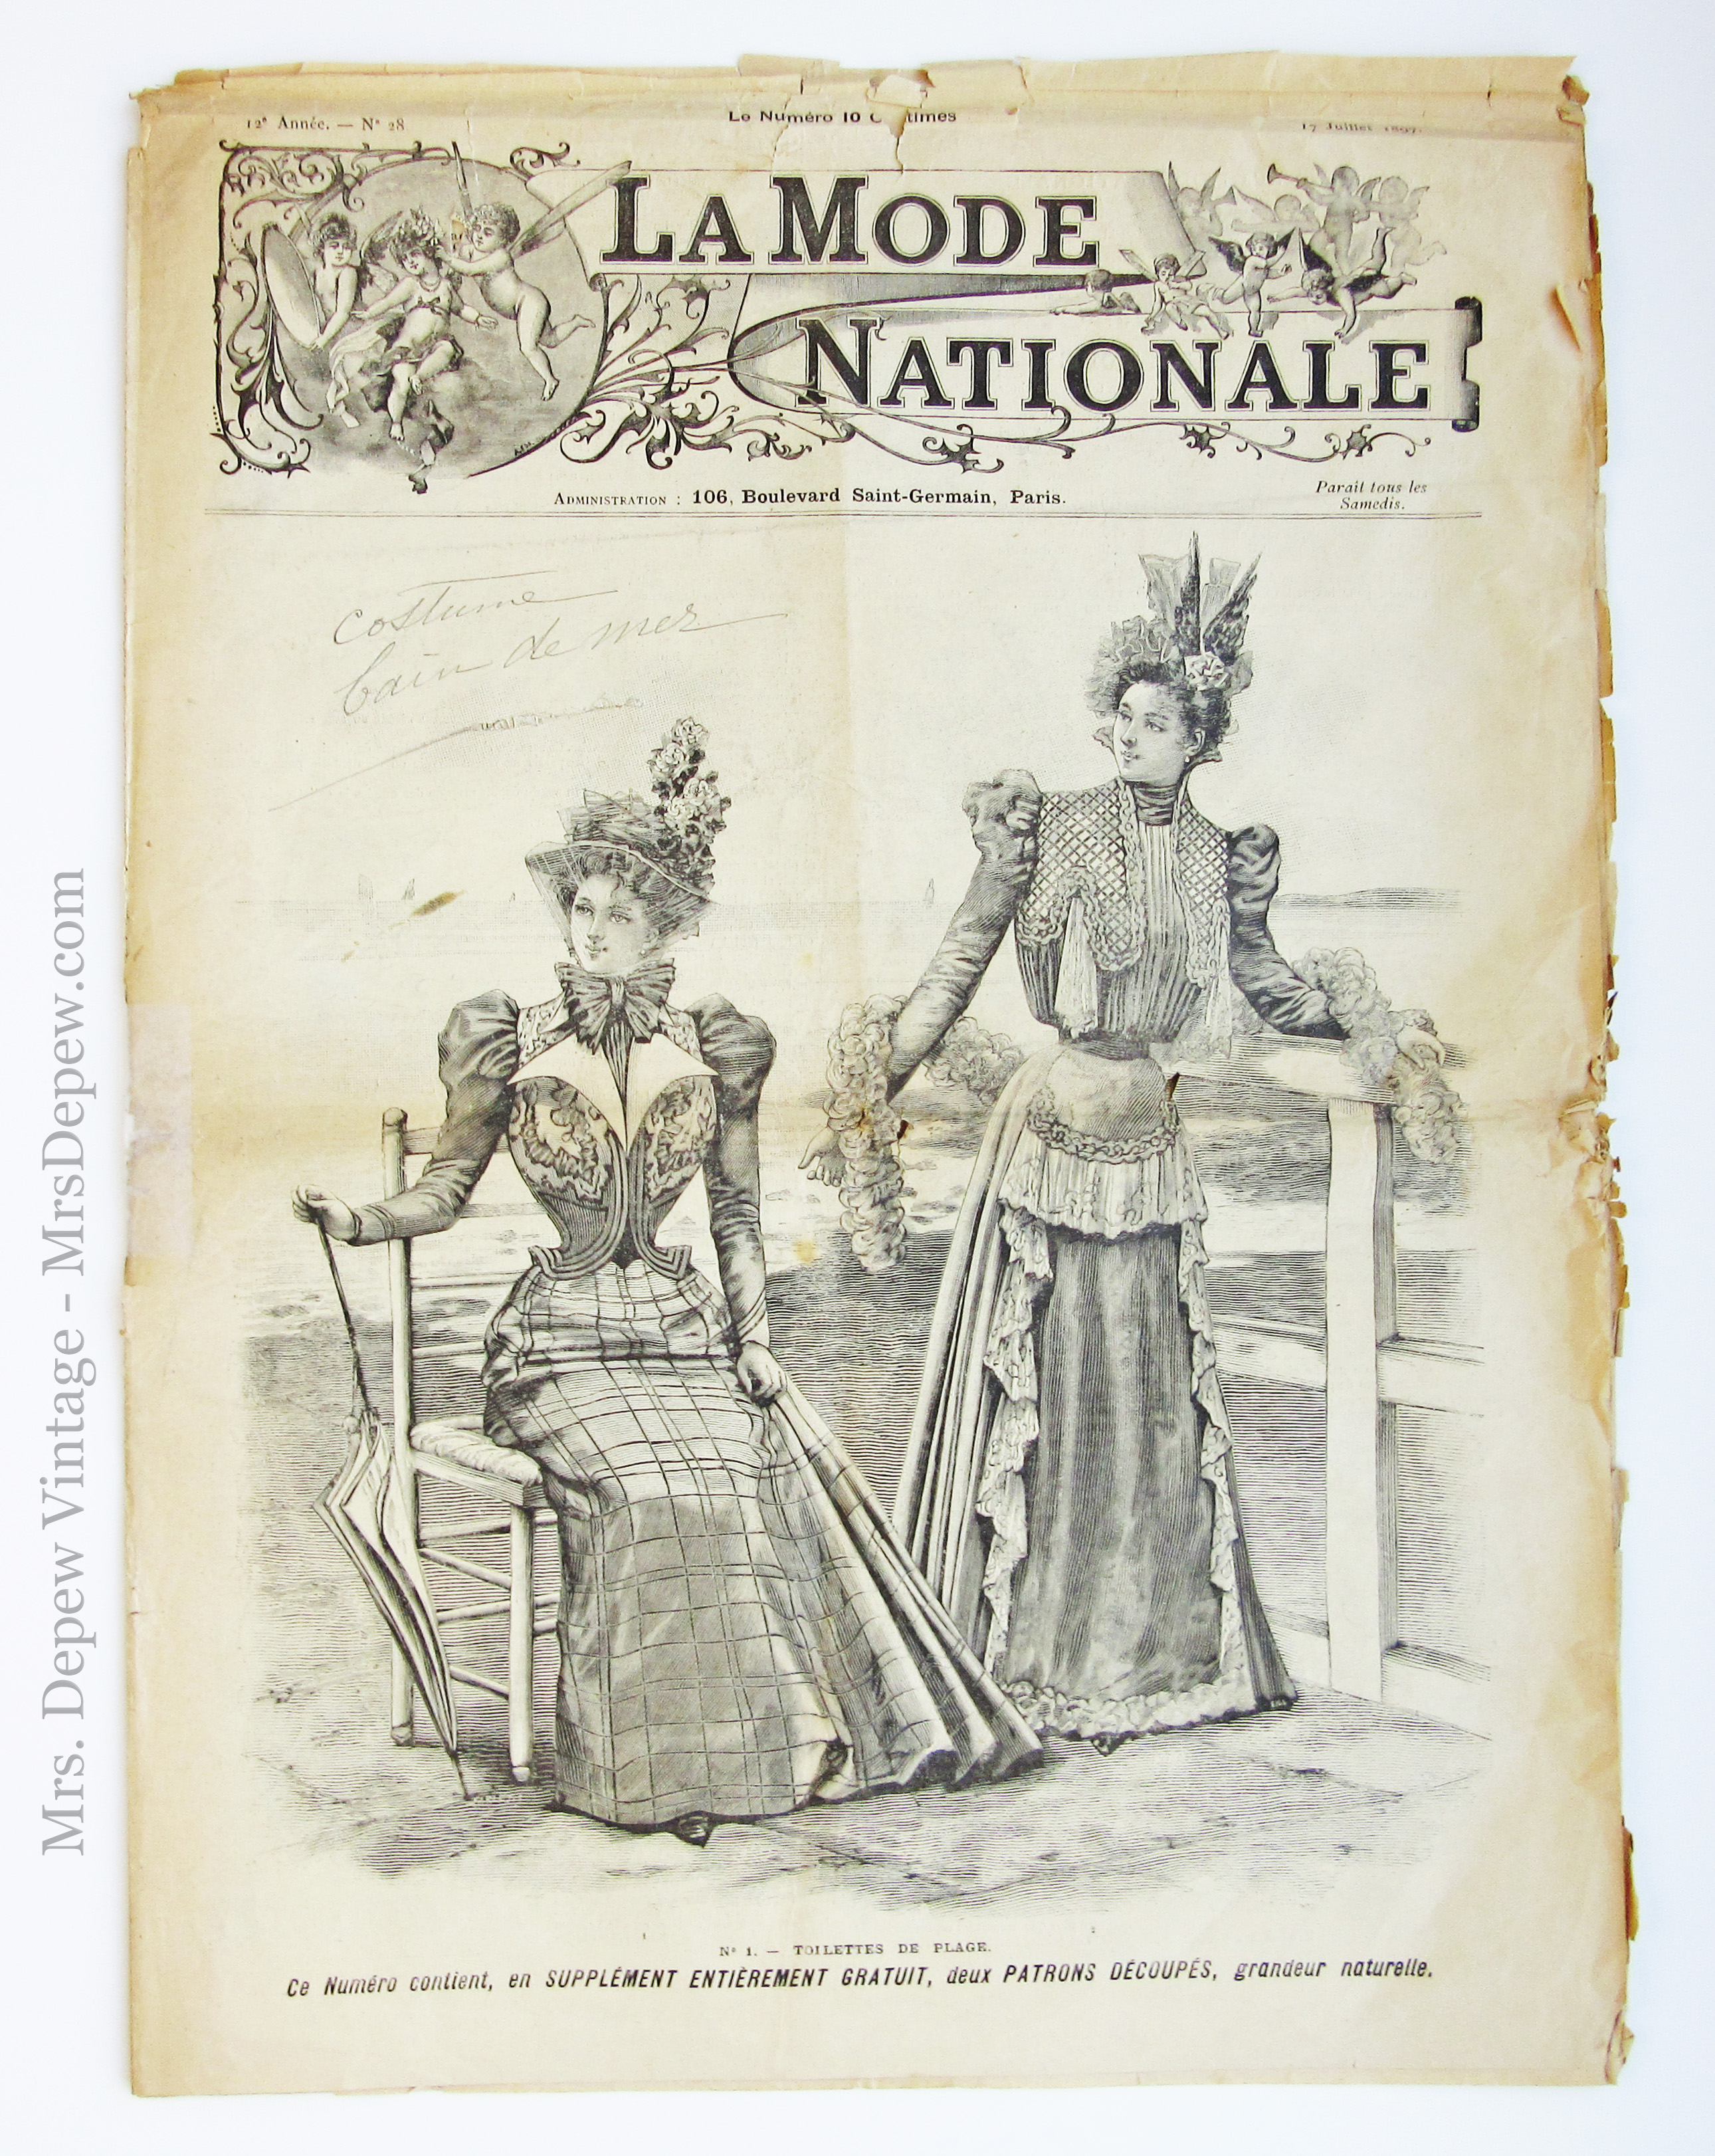 La Mode Nationale 17 Juillet 1897